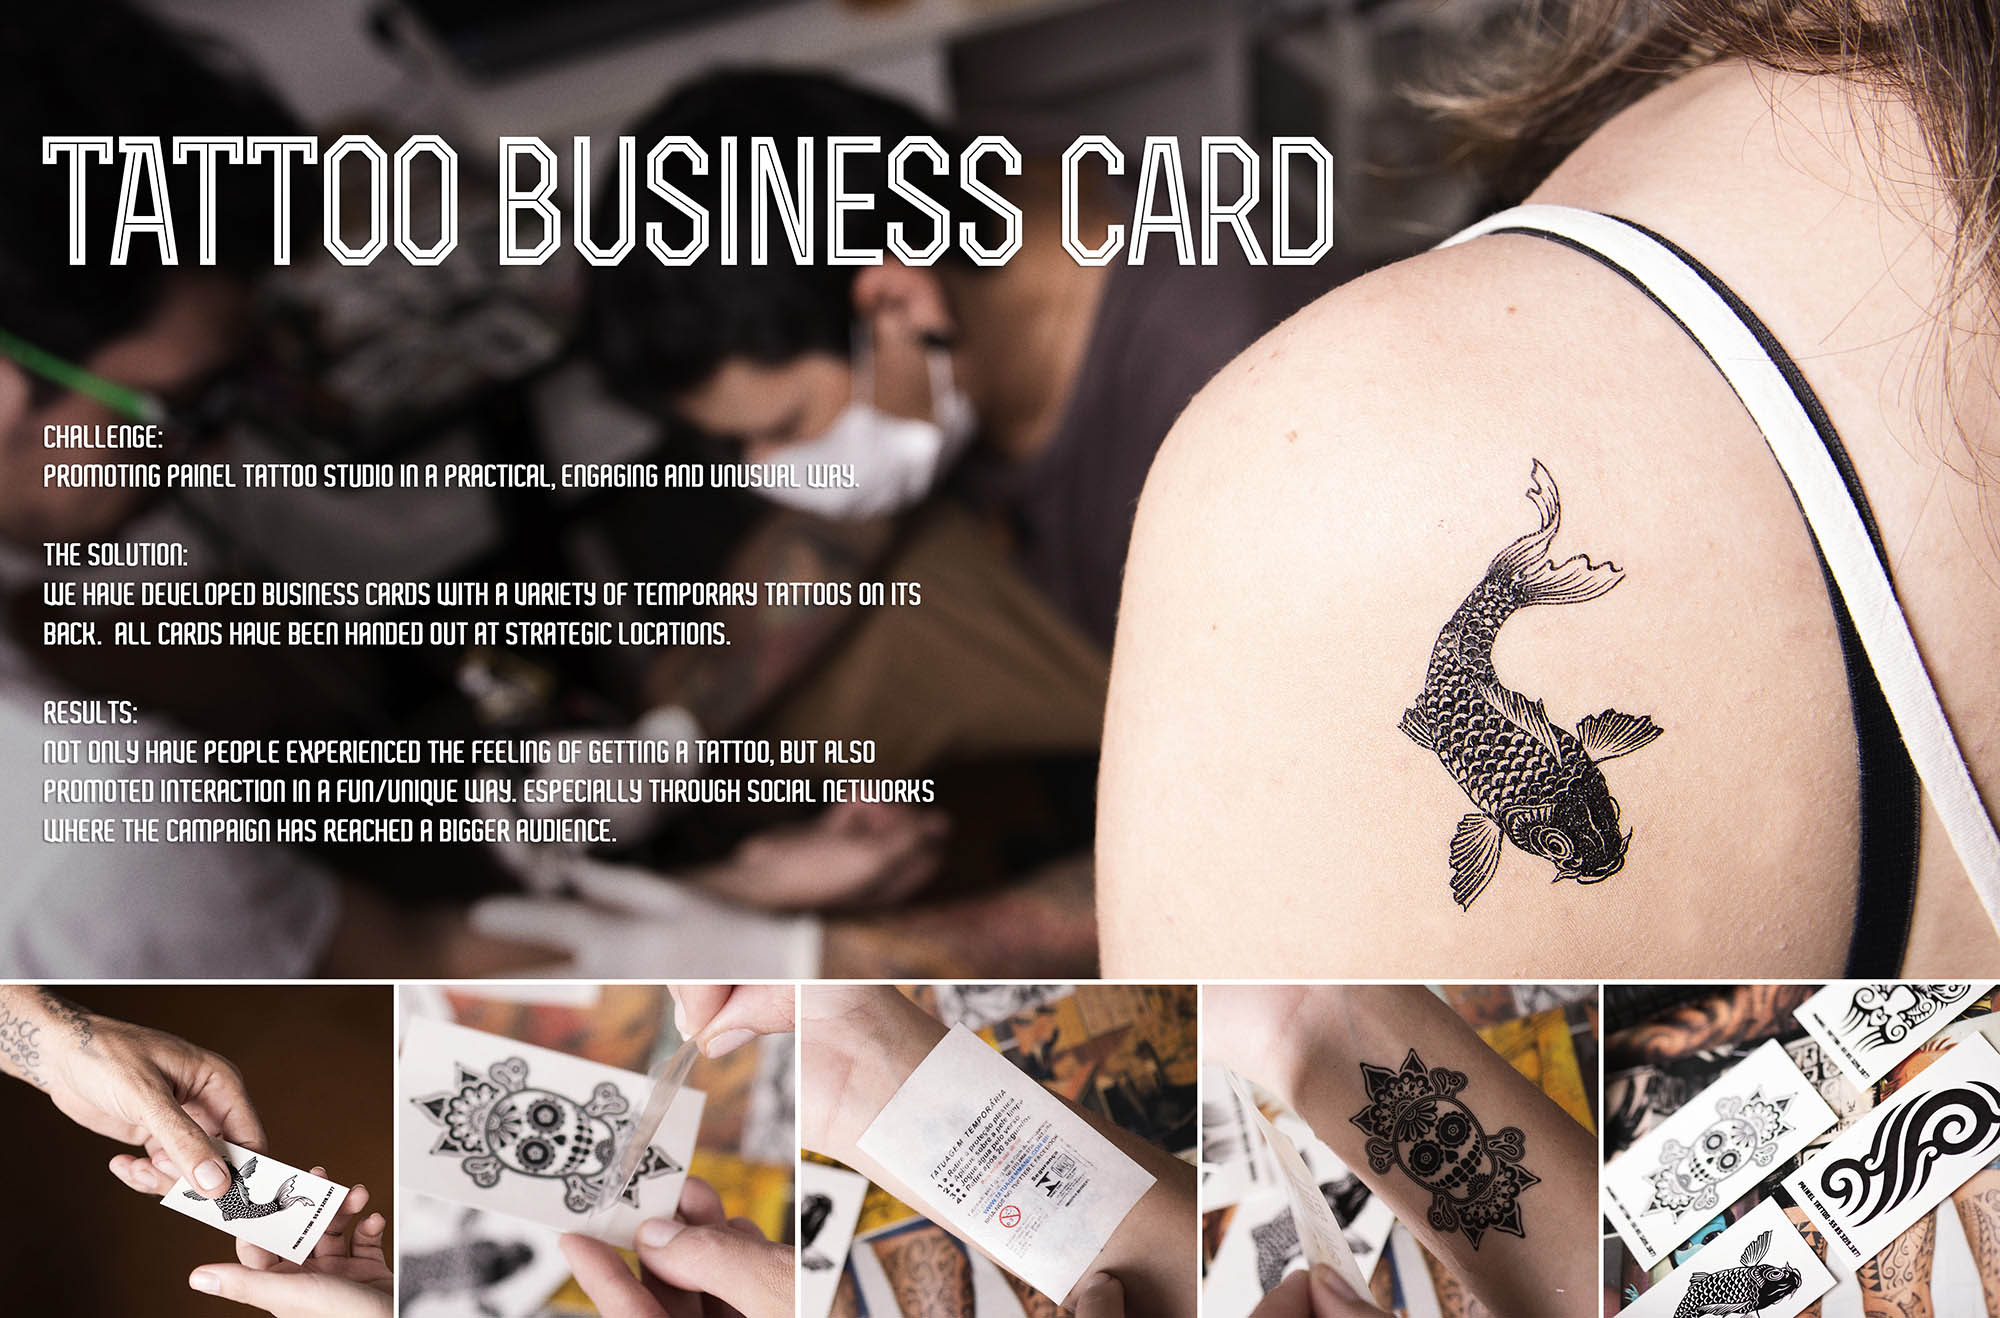 Painel tattoo tattoo business card naocritusss blog painel tattoo tattoo business card colourmoves